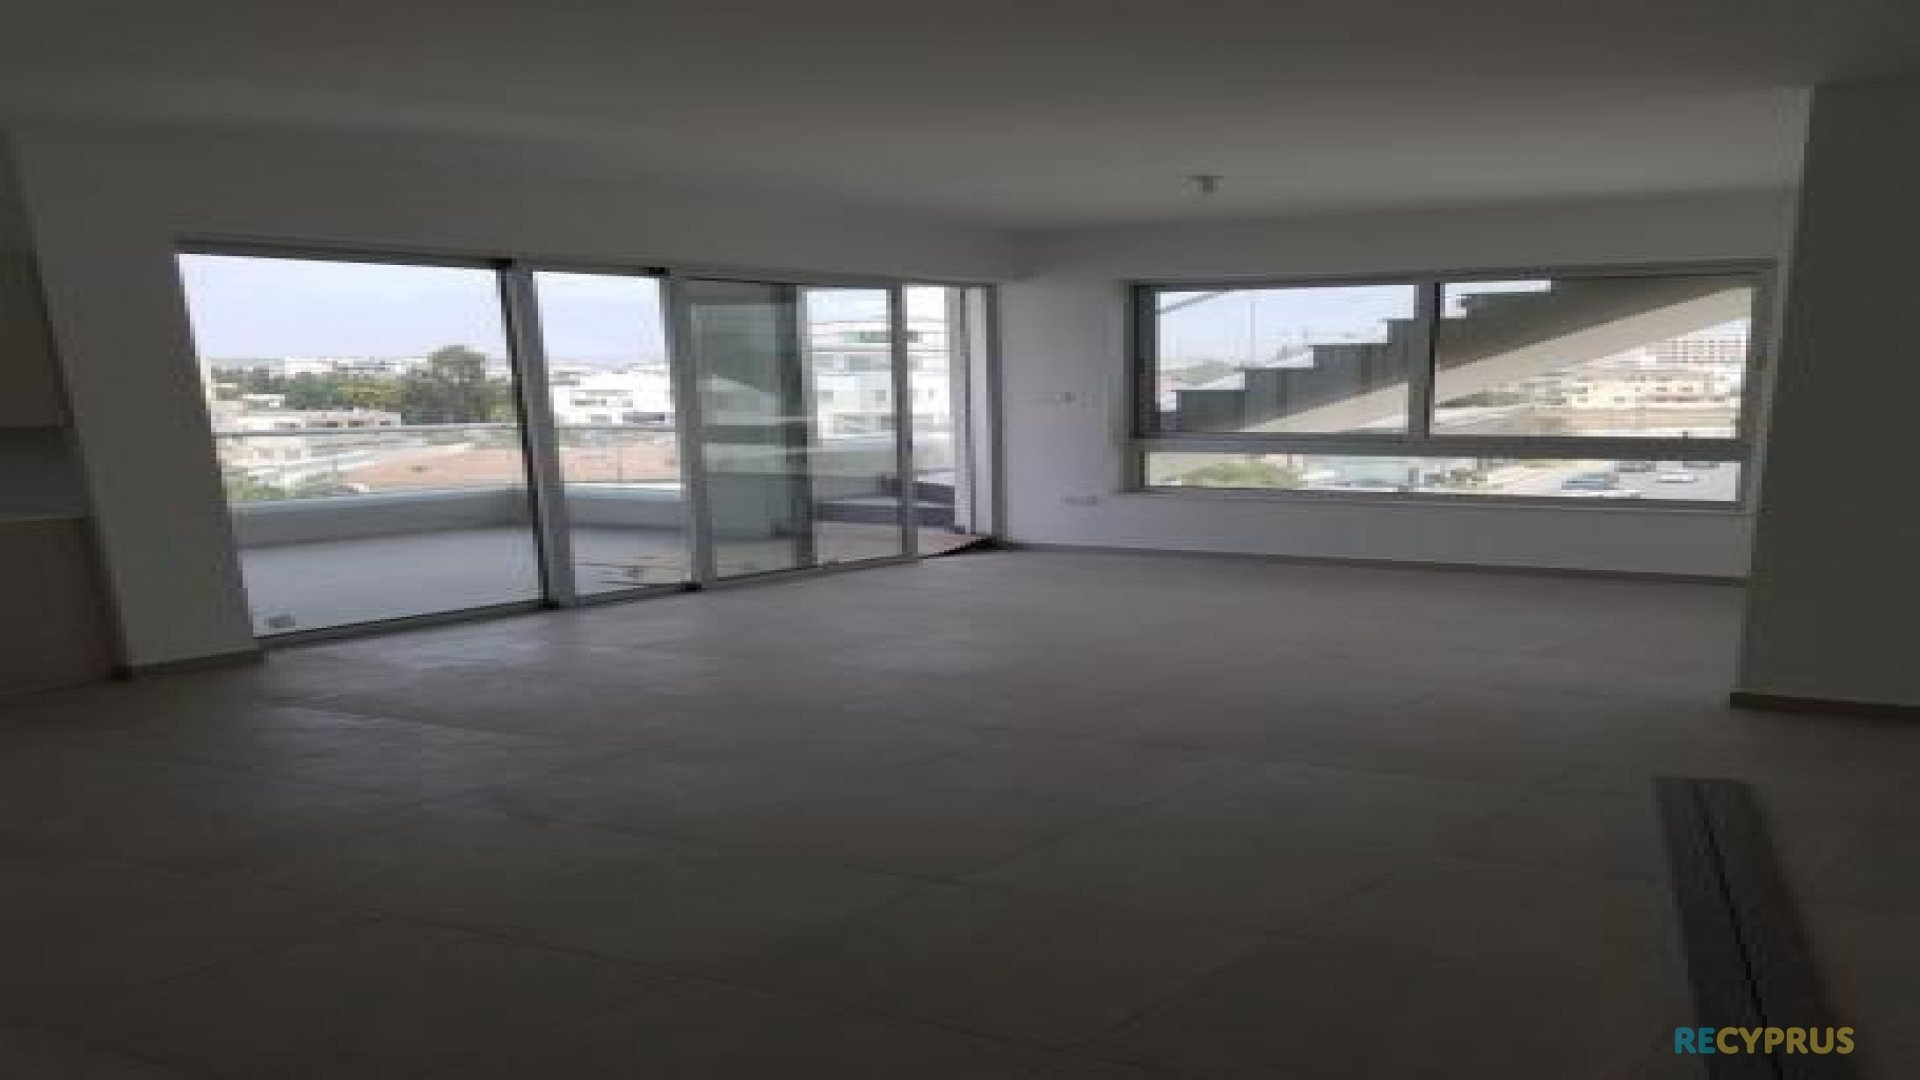 Apartment for sale City Center Larnaca Cyprus 11 3585